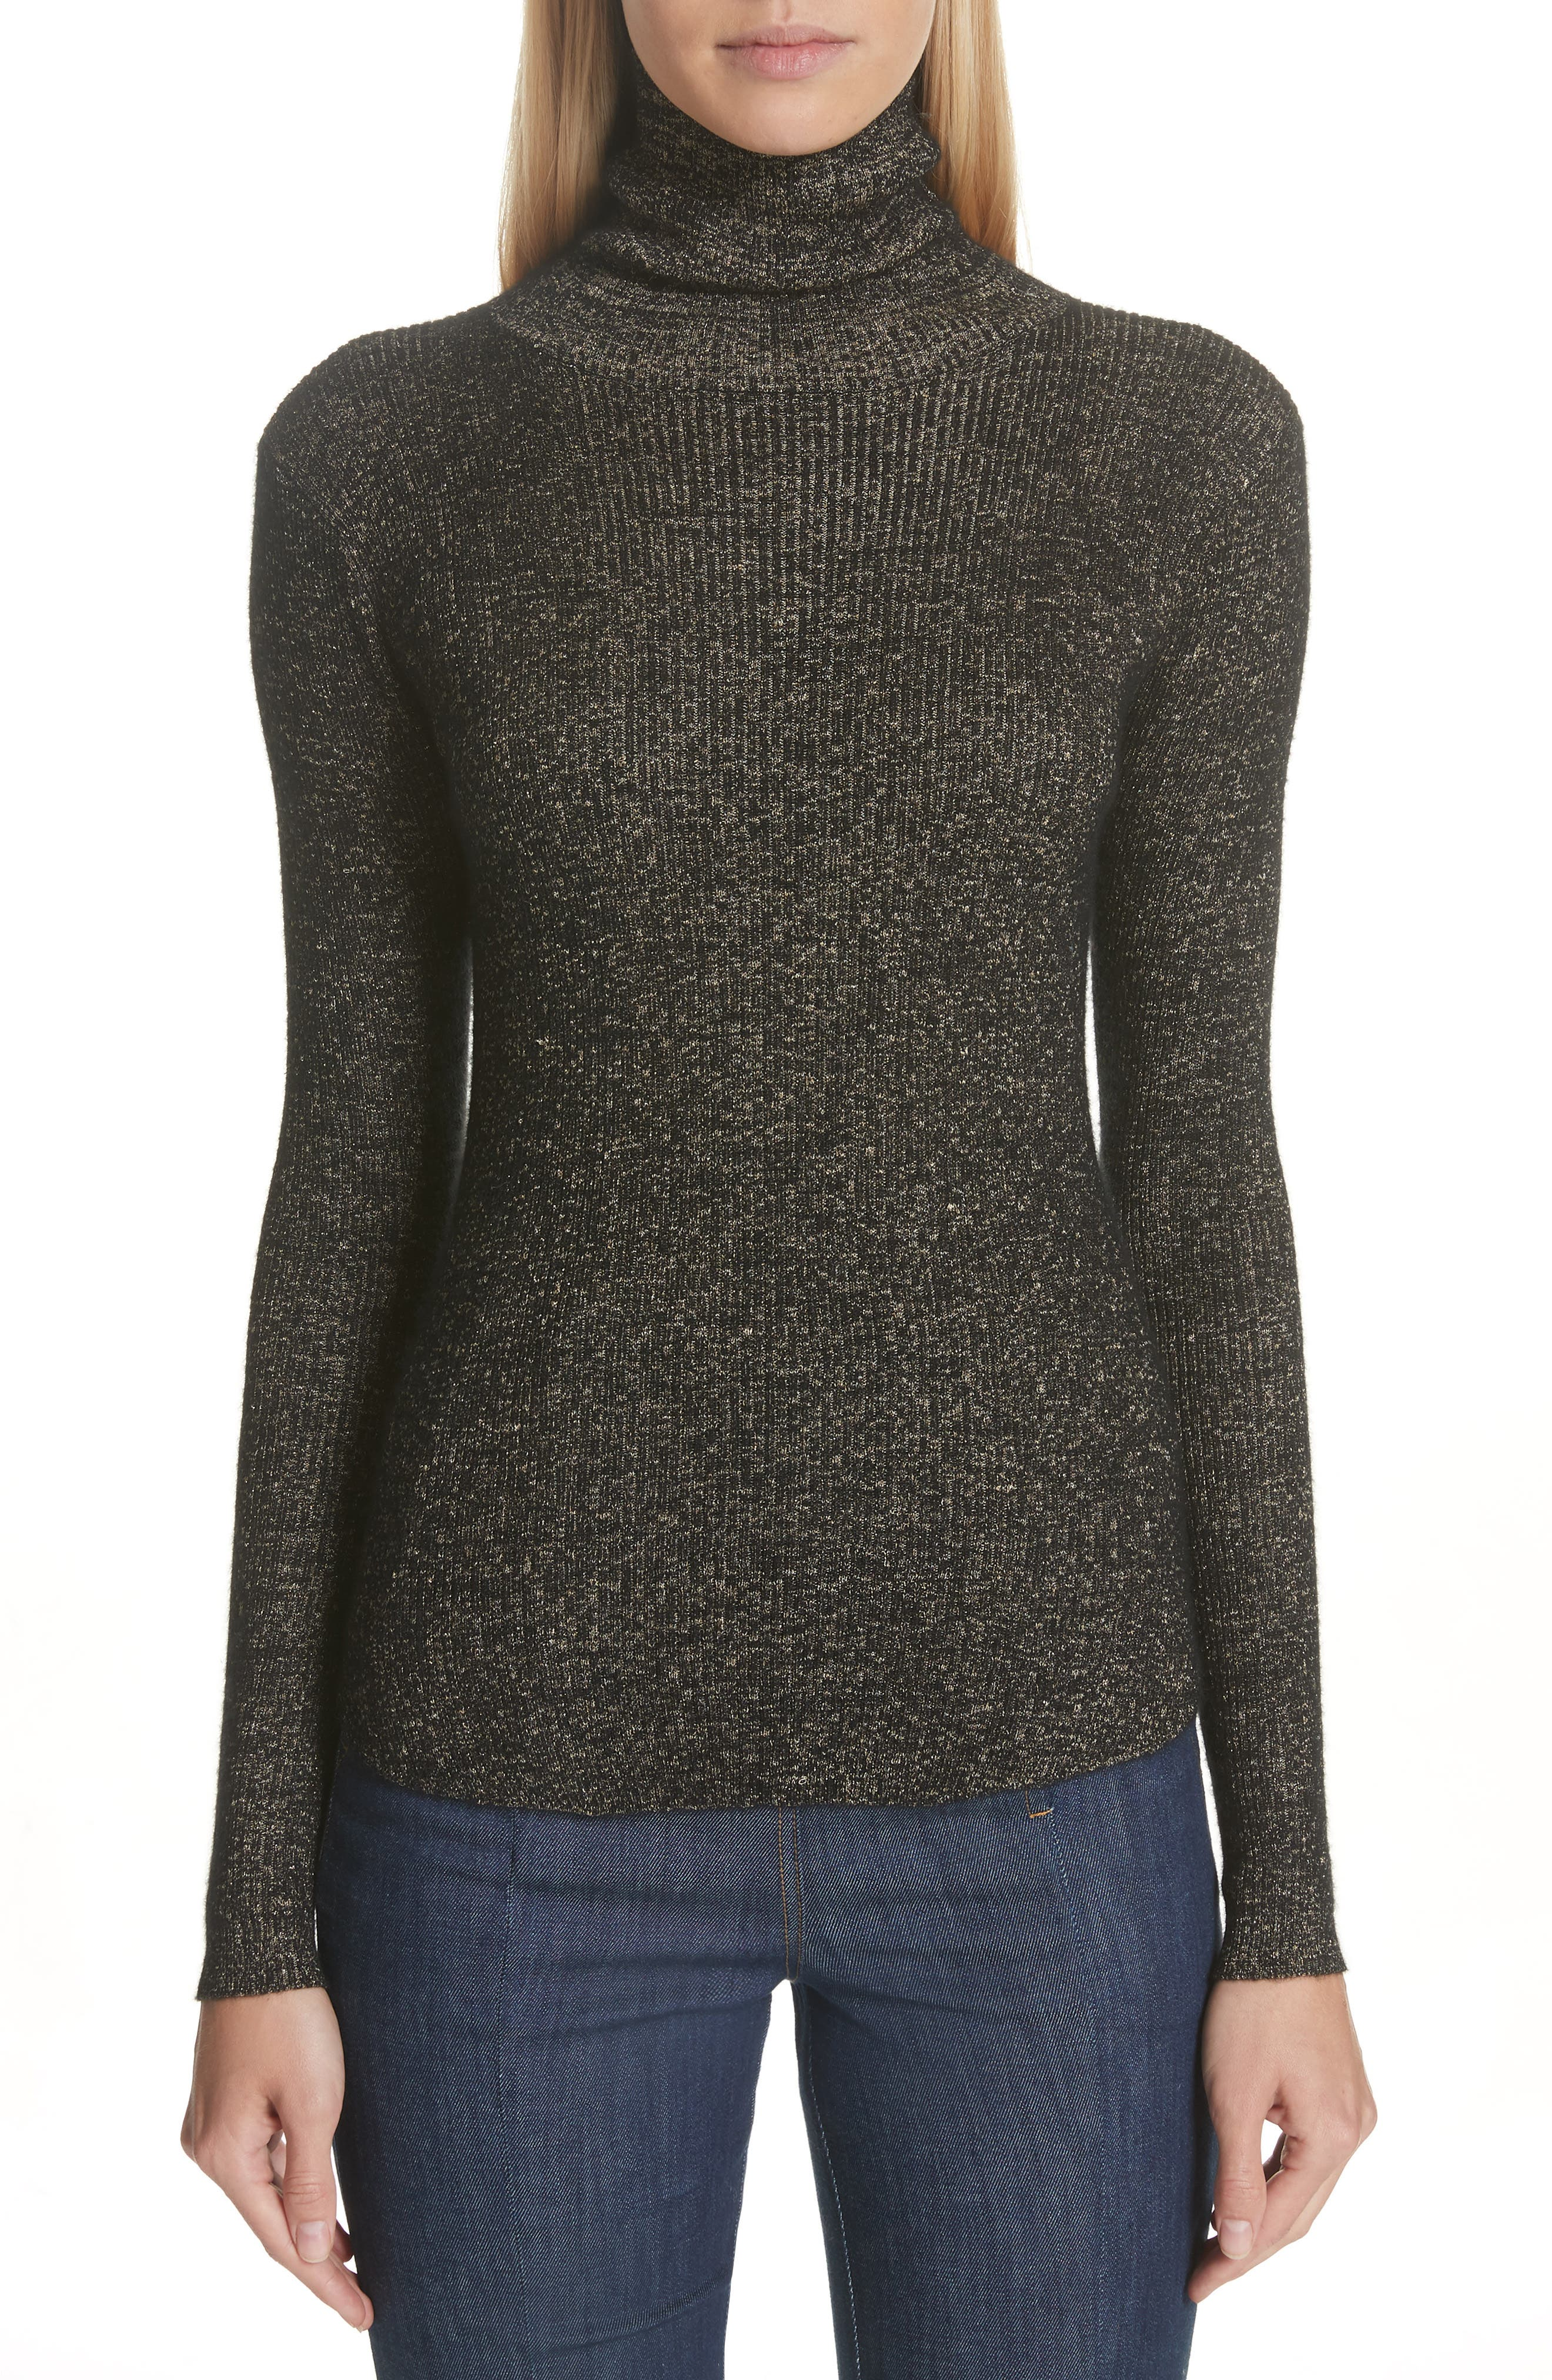 Mars Metallic Cashmere Blend Turtleneck Sweater in Charcoal